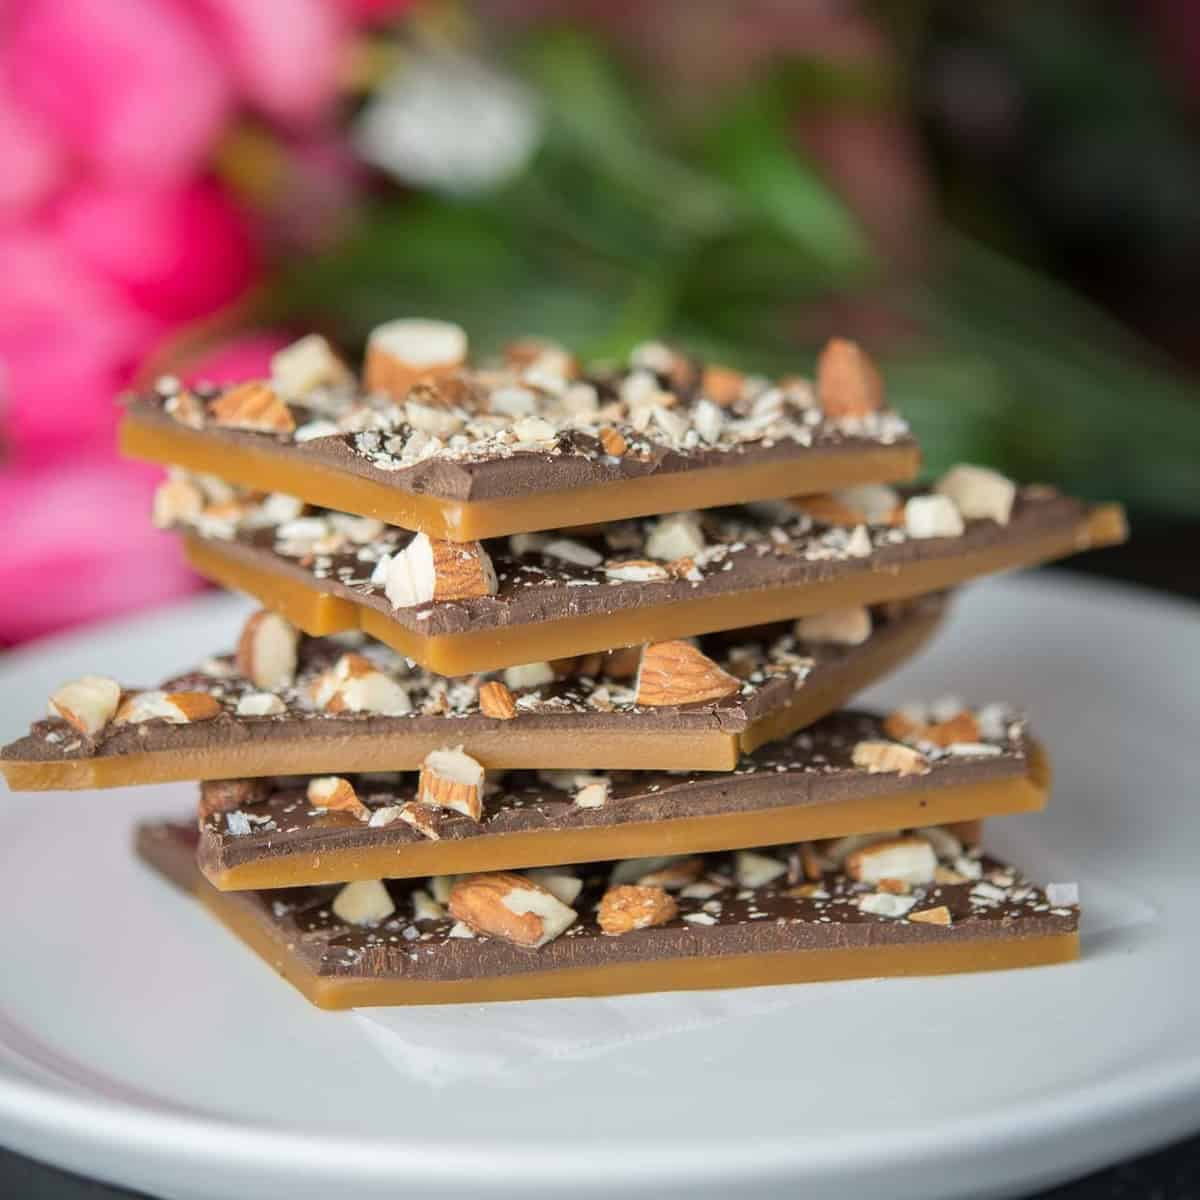 a stack of homemade butter toffee with a layer of dark chocolate and roasted almonds.